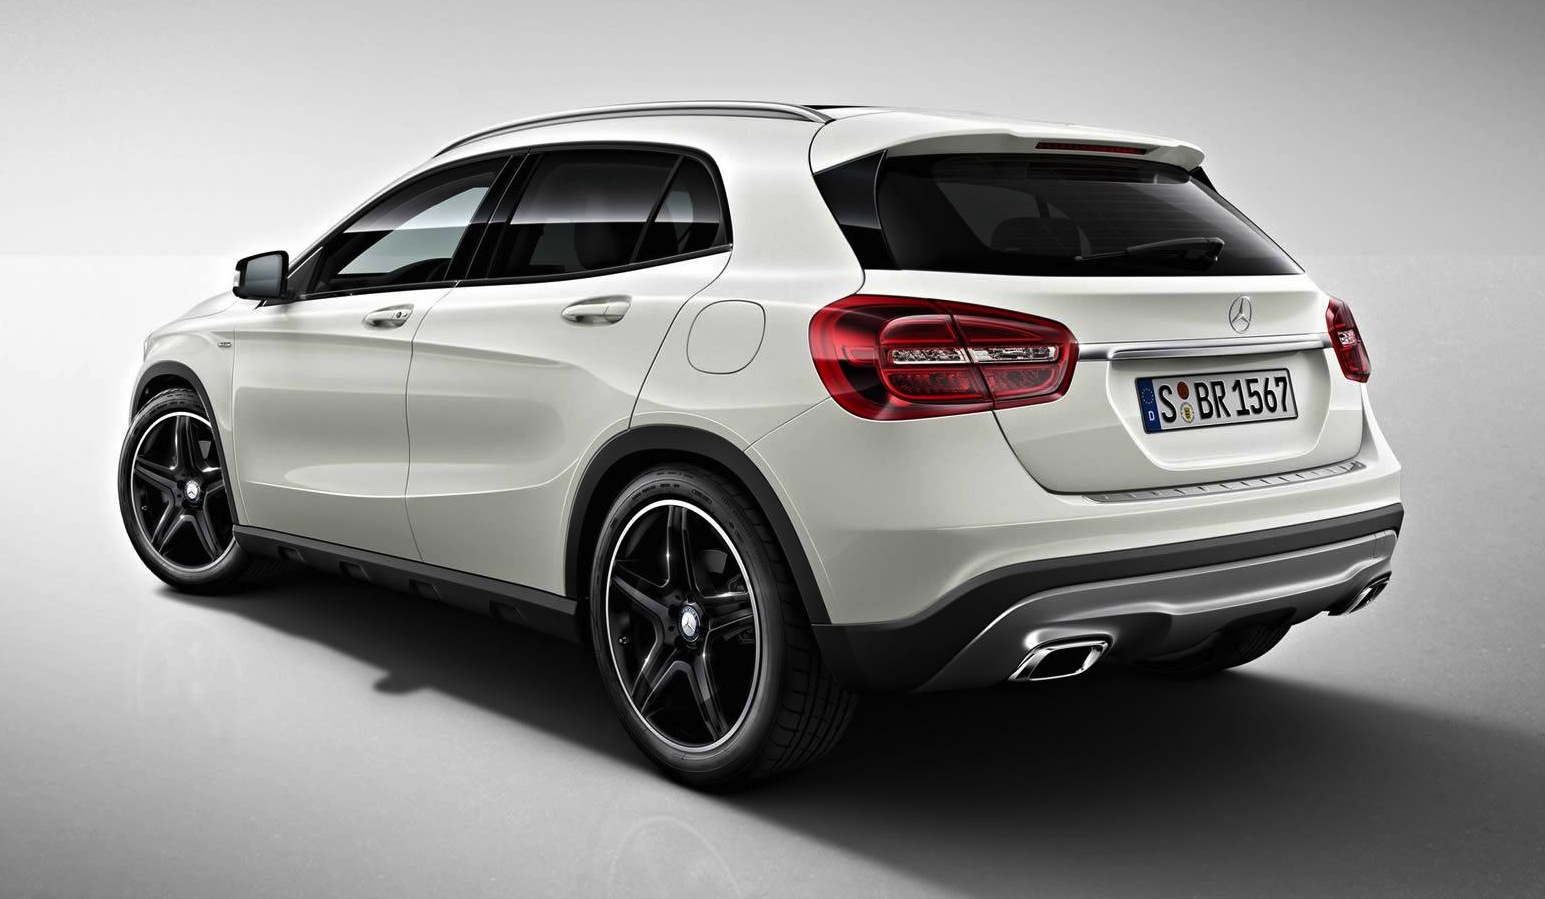 mercedes benz gla edition 1 limited edition compact suv revealed photos. Black Bedroom Furniture Sets. Home Design Ideas